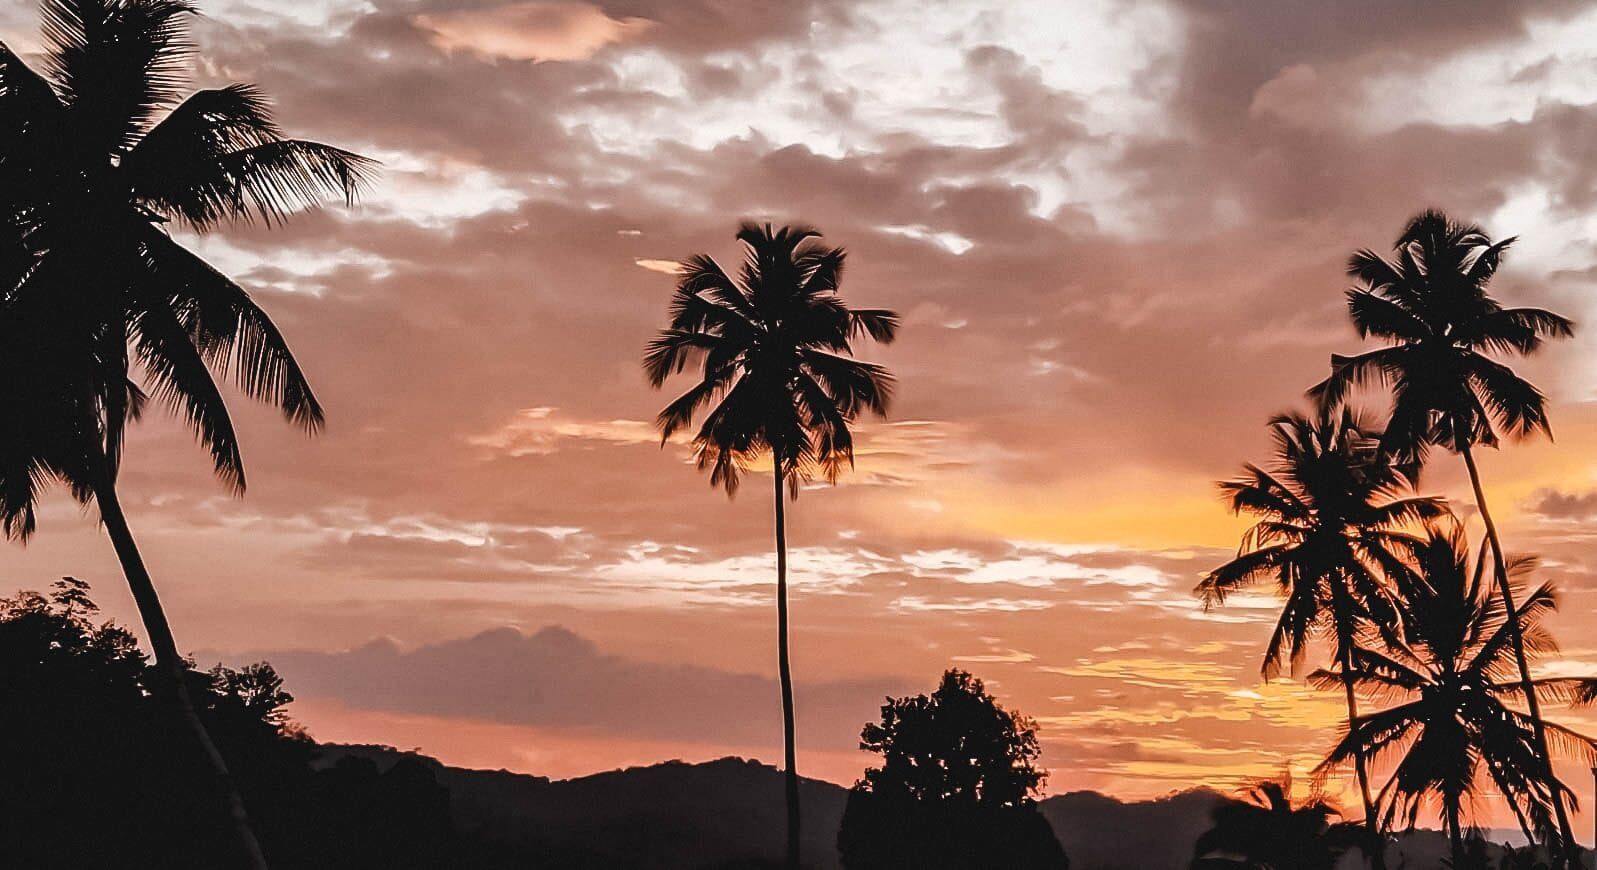 Palm trees at sunset in Sri Lanka